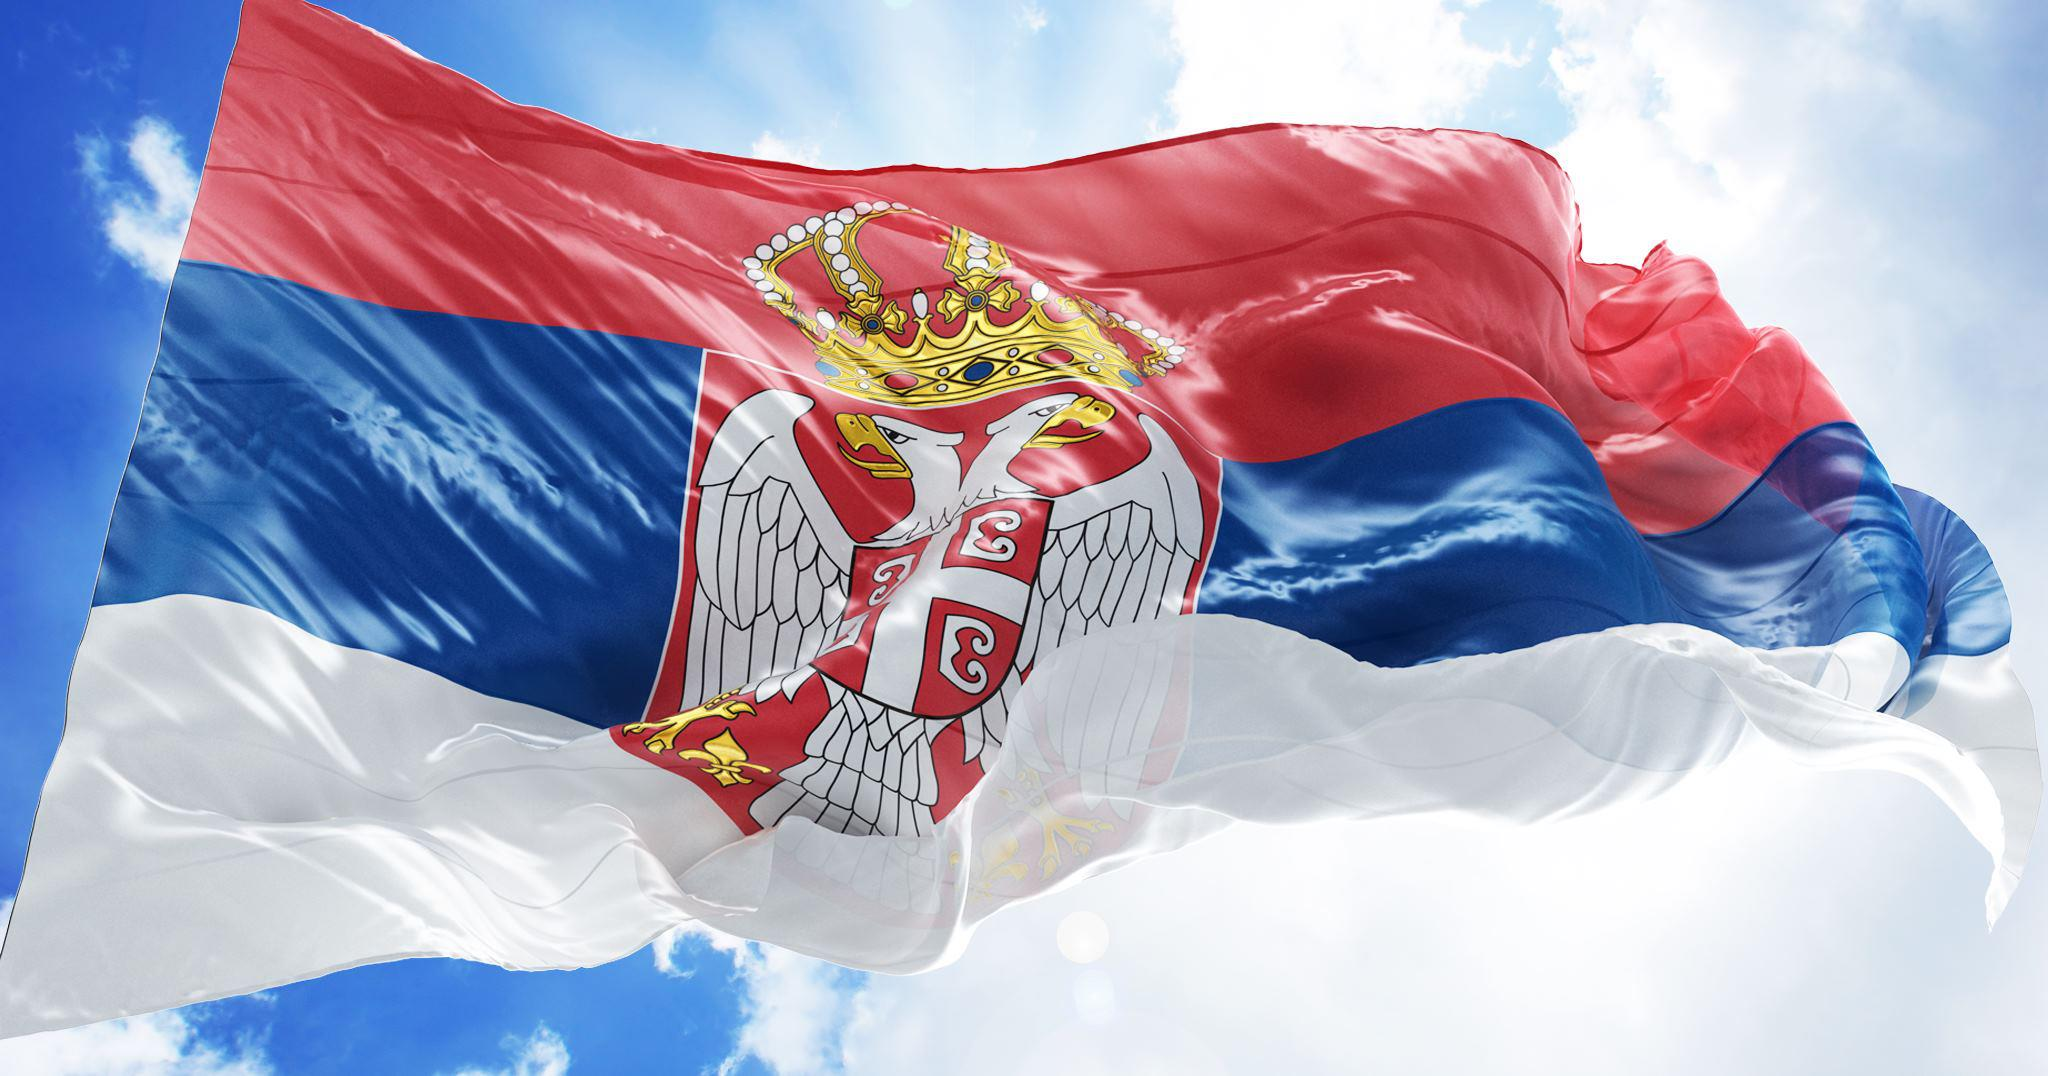 Video message of the Embassy of the Republic of Serbia